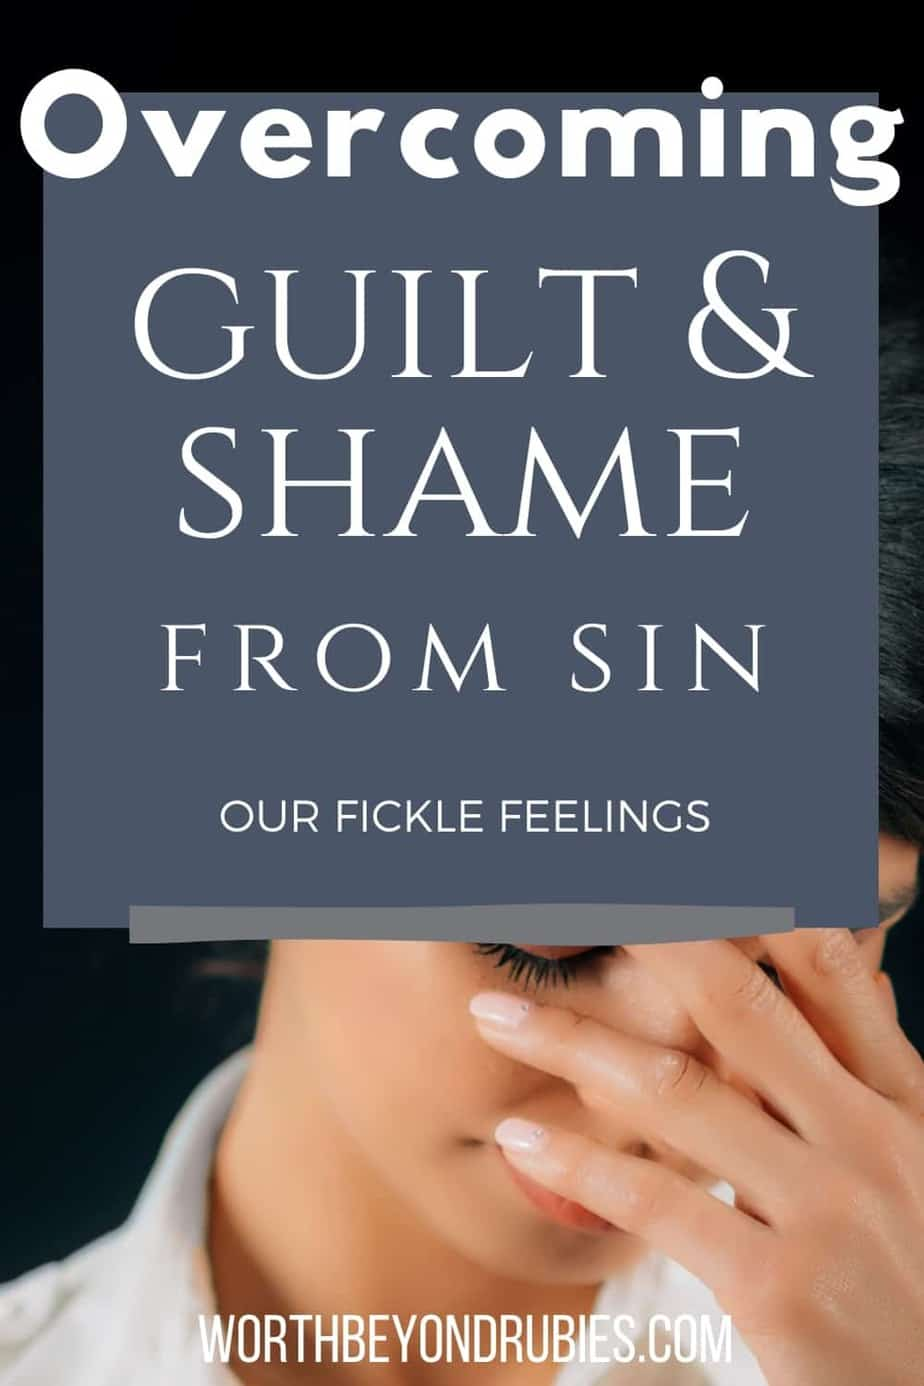 An image of a dark haired woman against a black background. She has on a white blouse and is looking downward with her head in her hand like she is ashamed with a text overlay that says Overcoming Guilt and Shame From Sin - Our Fickle Feelings!